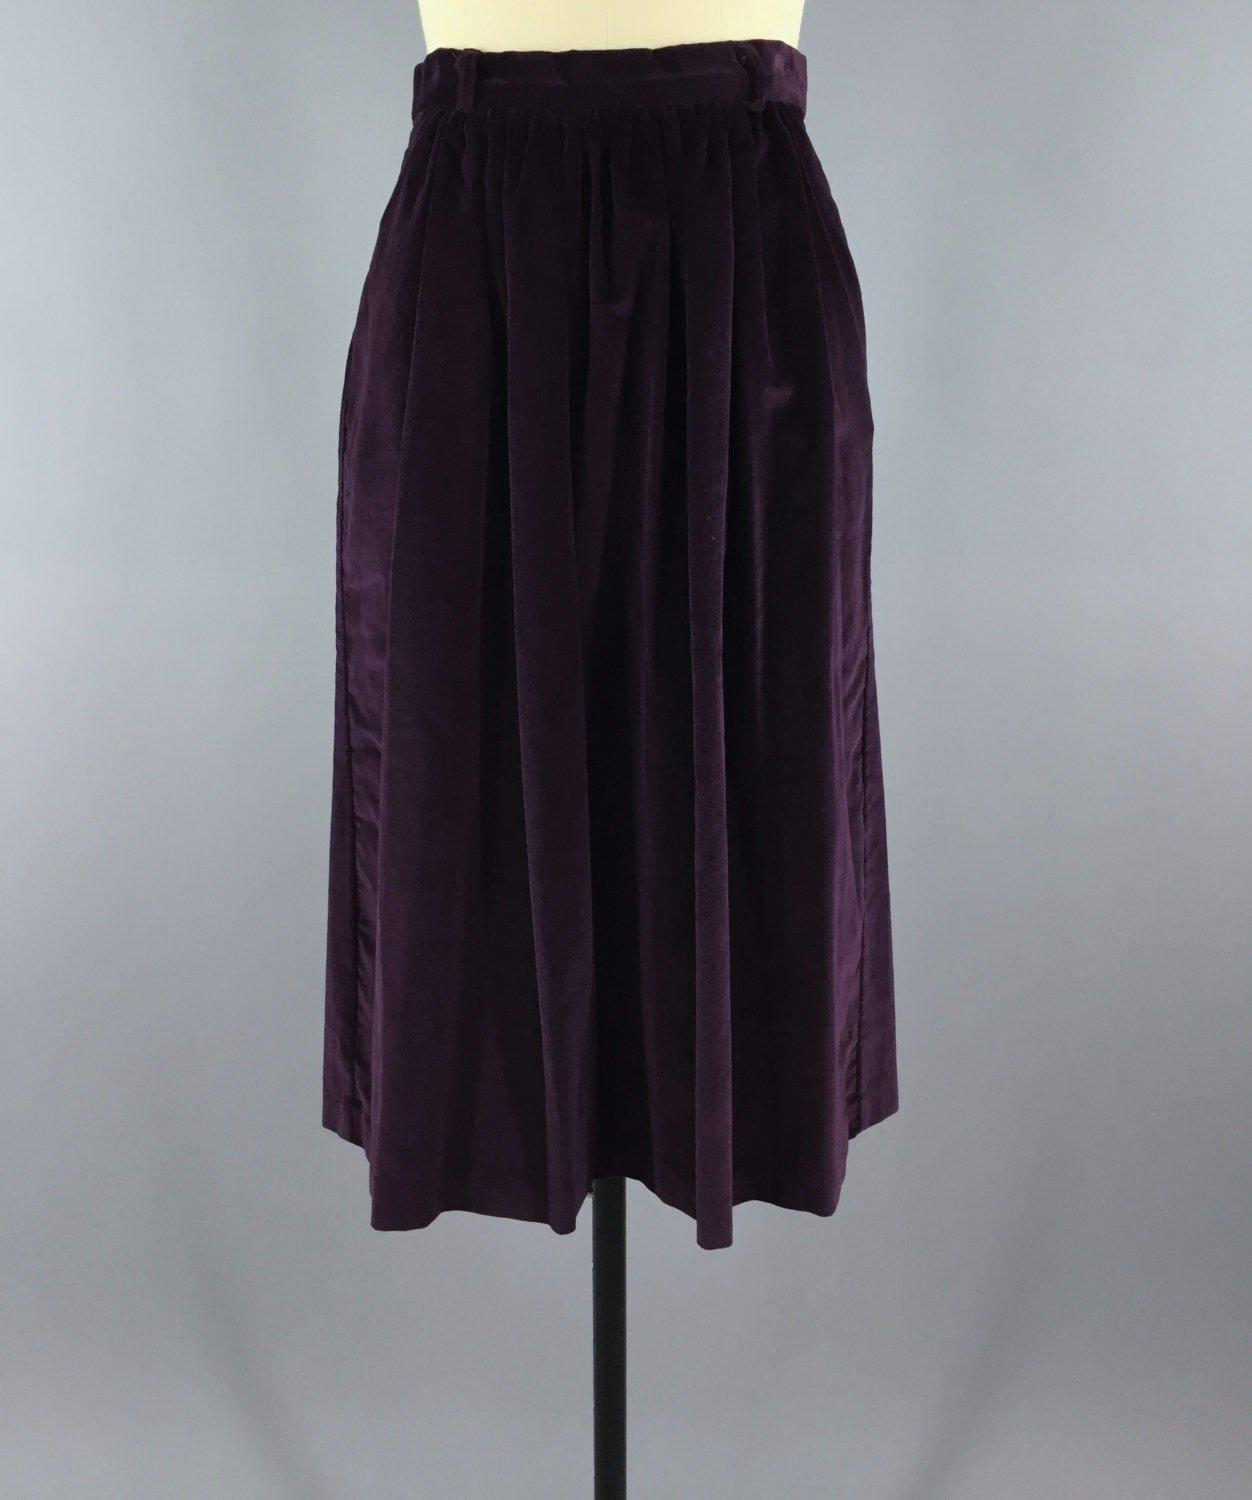 Vintage 1980s Purple Velvet Pencil Skirt Bottoms ThisBlueBird - Sale